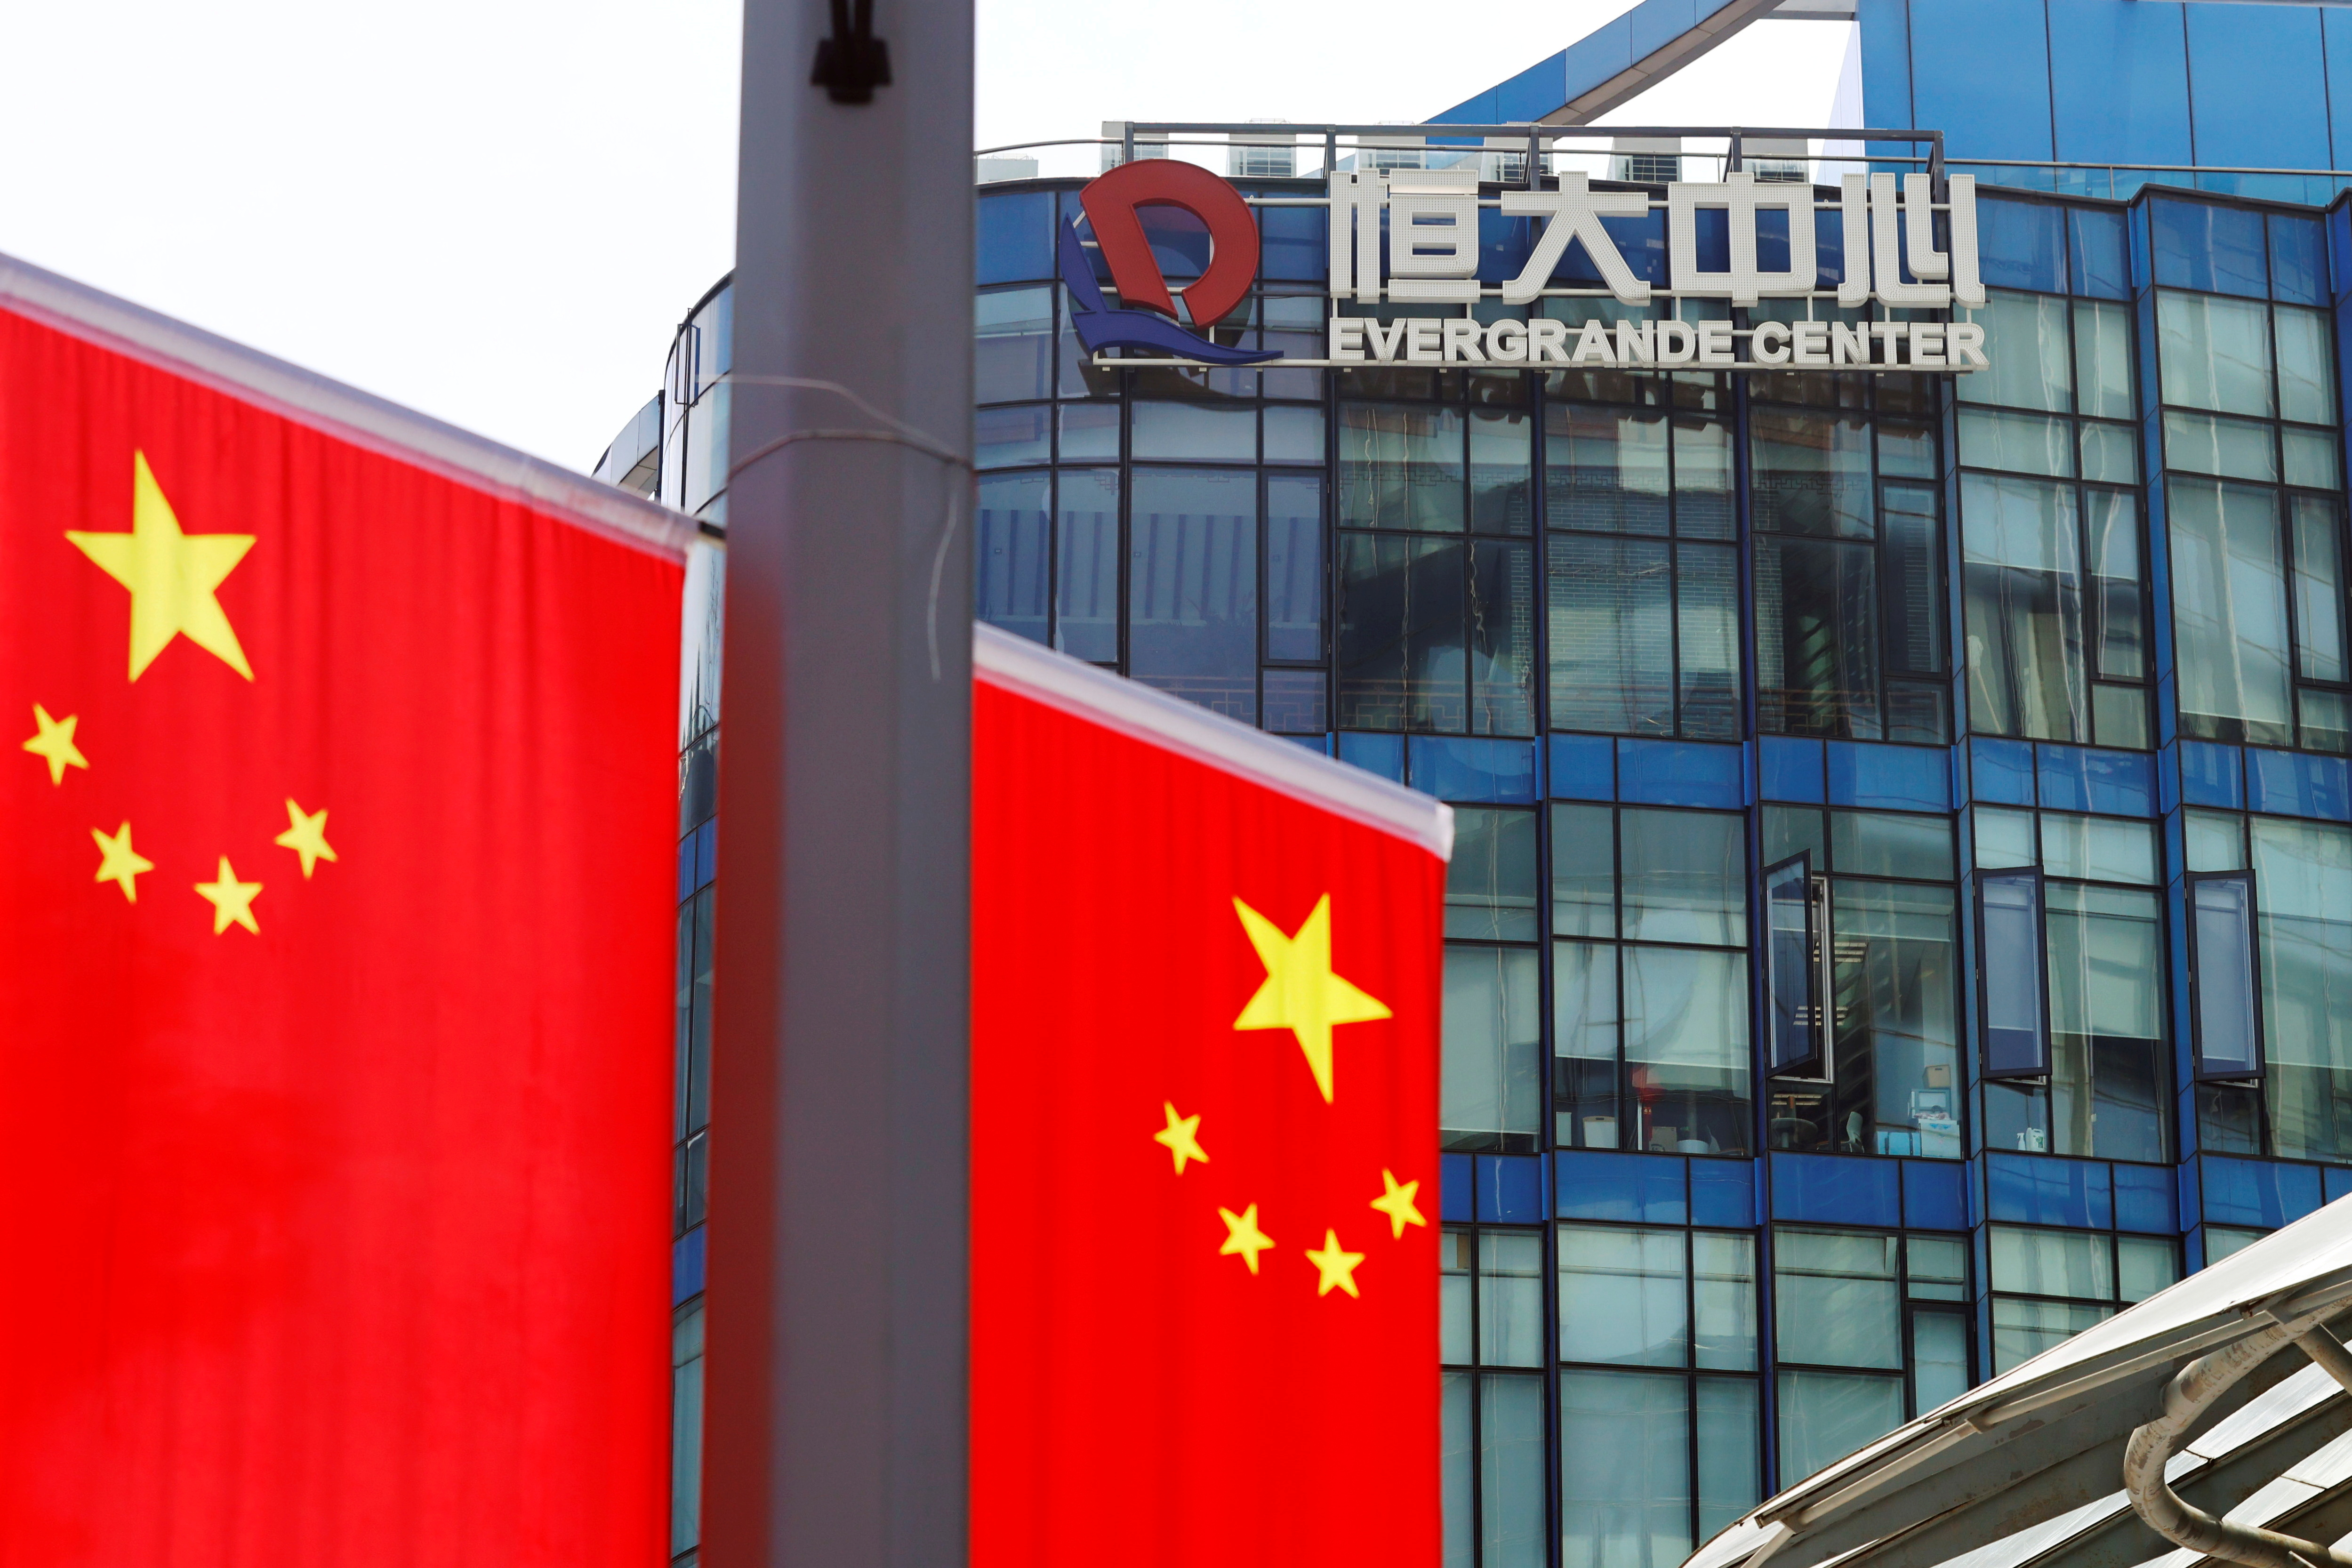 Chinese flags are seen near the logo of the China Evergrande Group on the Evergrande Center in Shanghai, China, September 24, 2021. REUTERS/Aly Song/File Photo